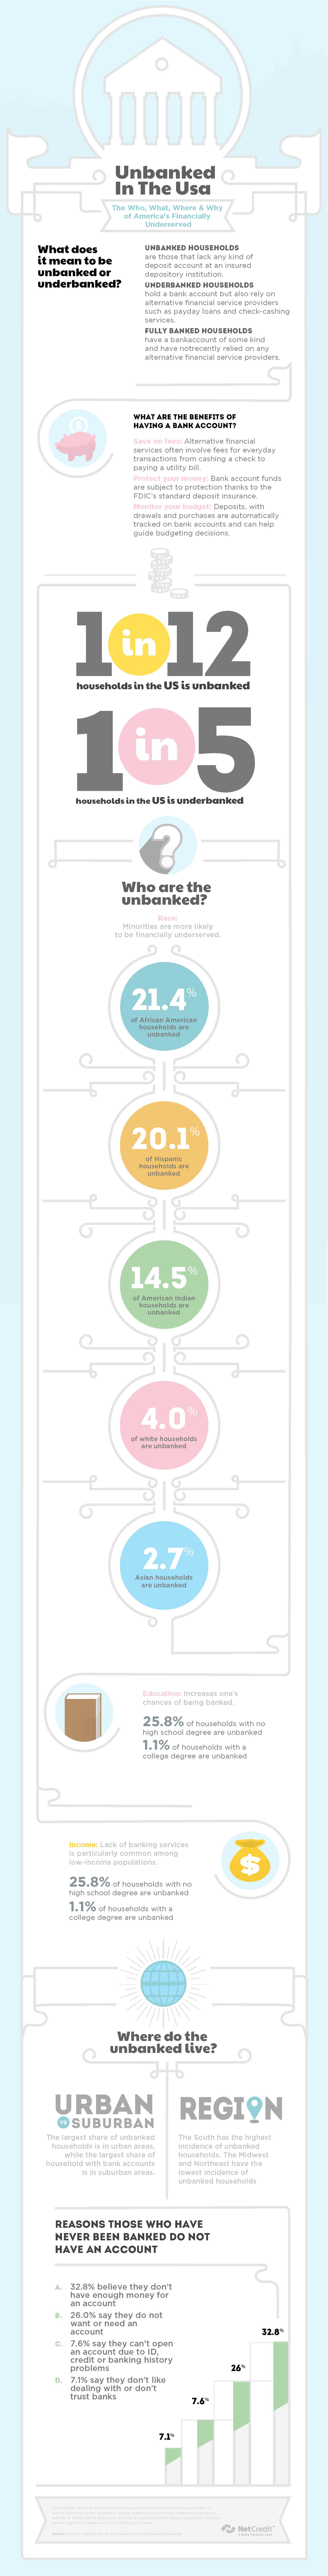 Unbanked_In_The_USA_Infographic